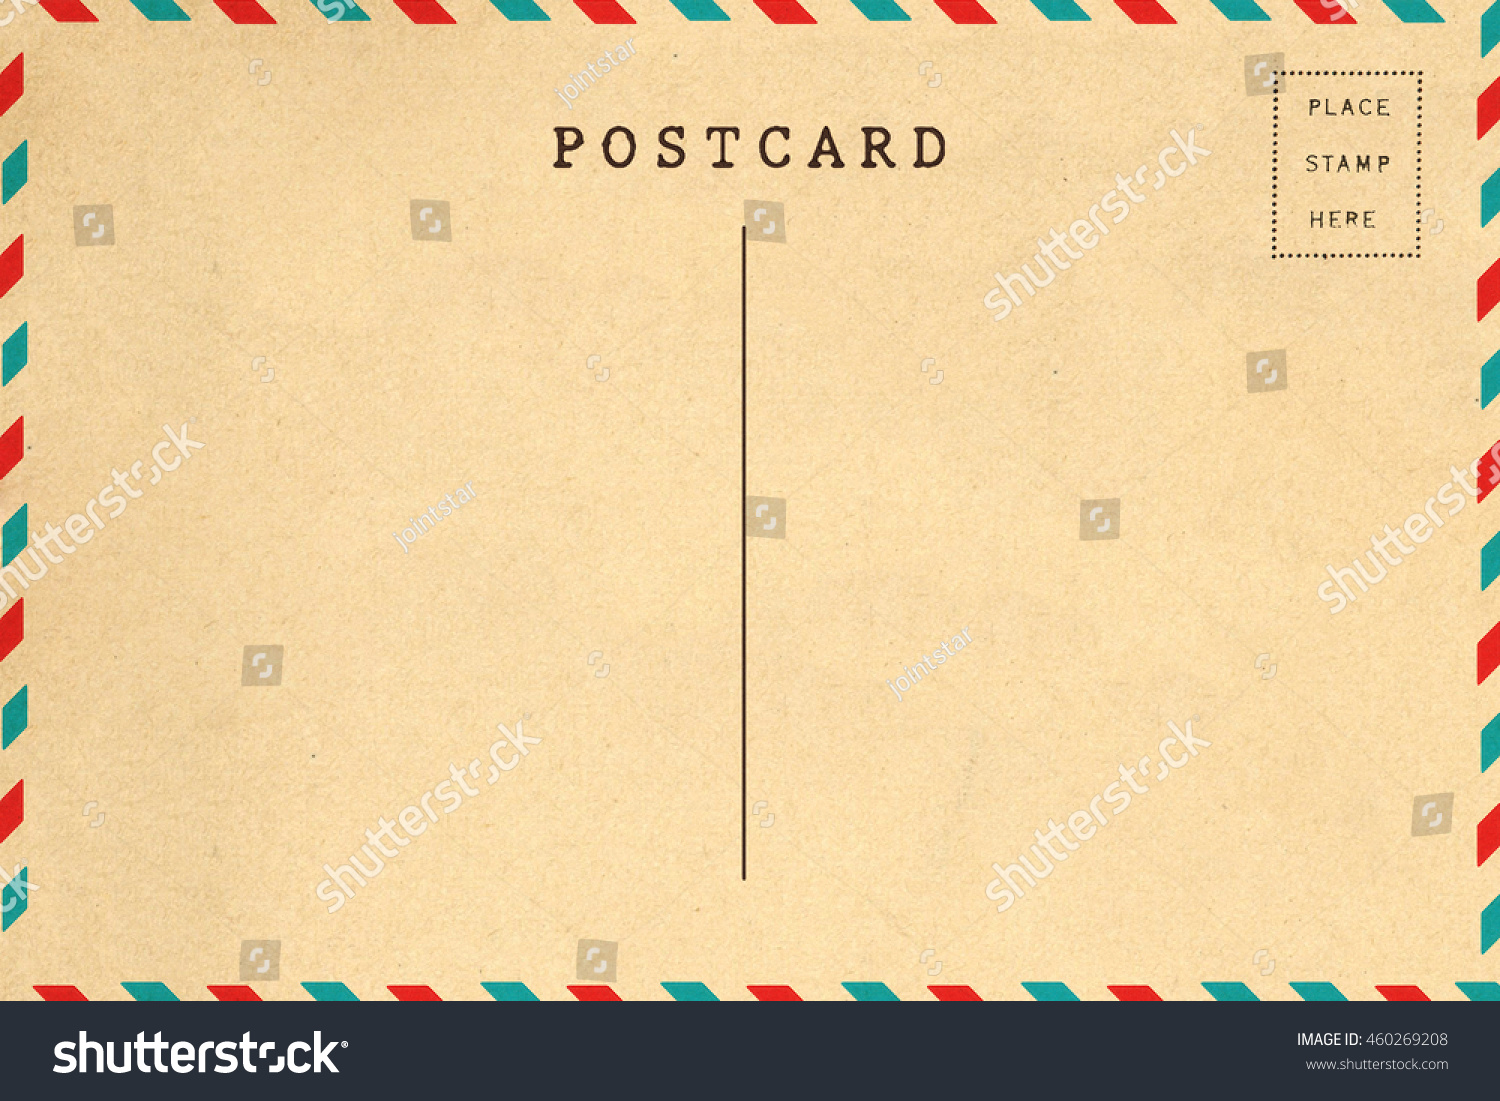 Back of airmail blank postcard template | EZ Canvas